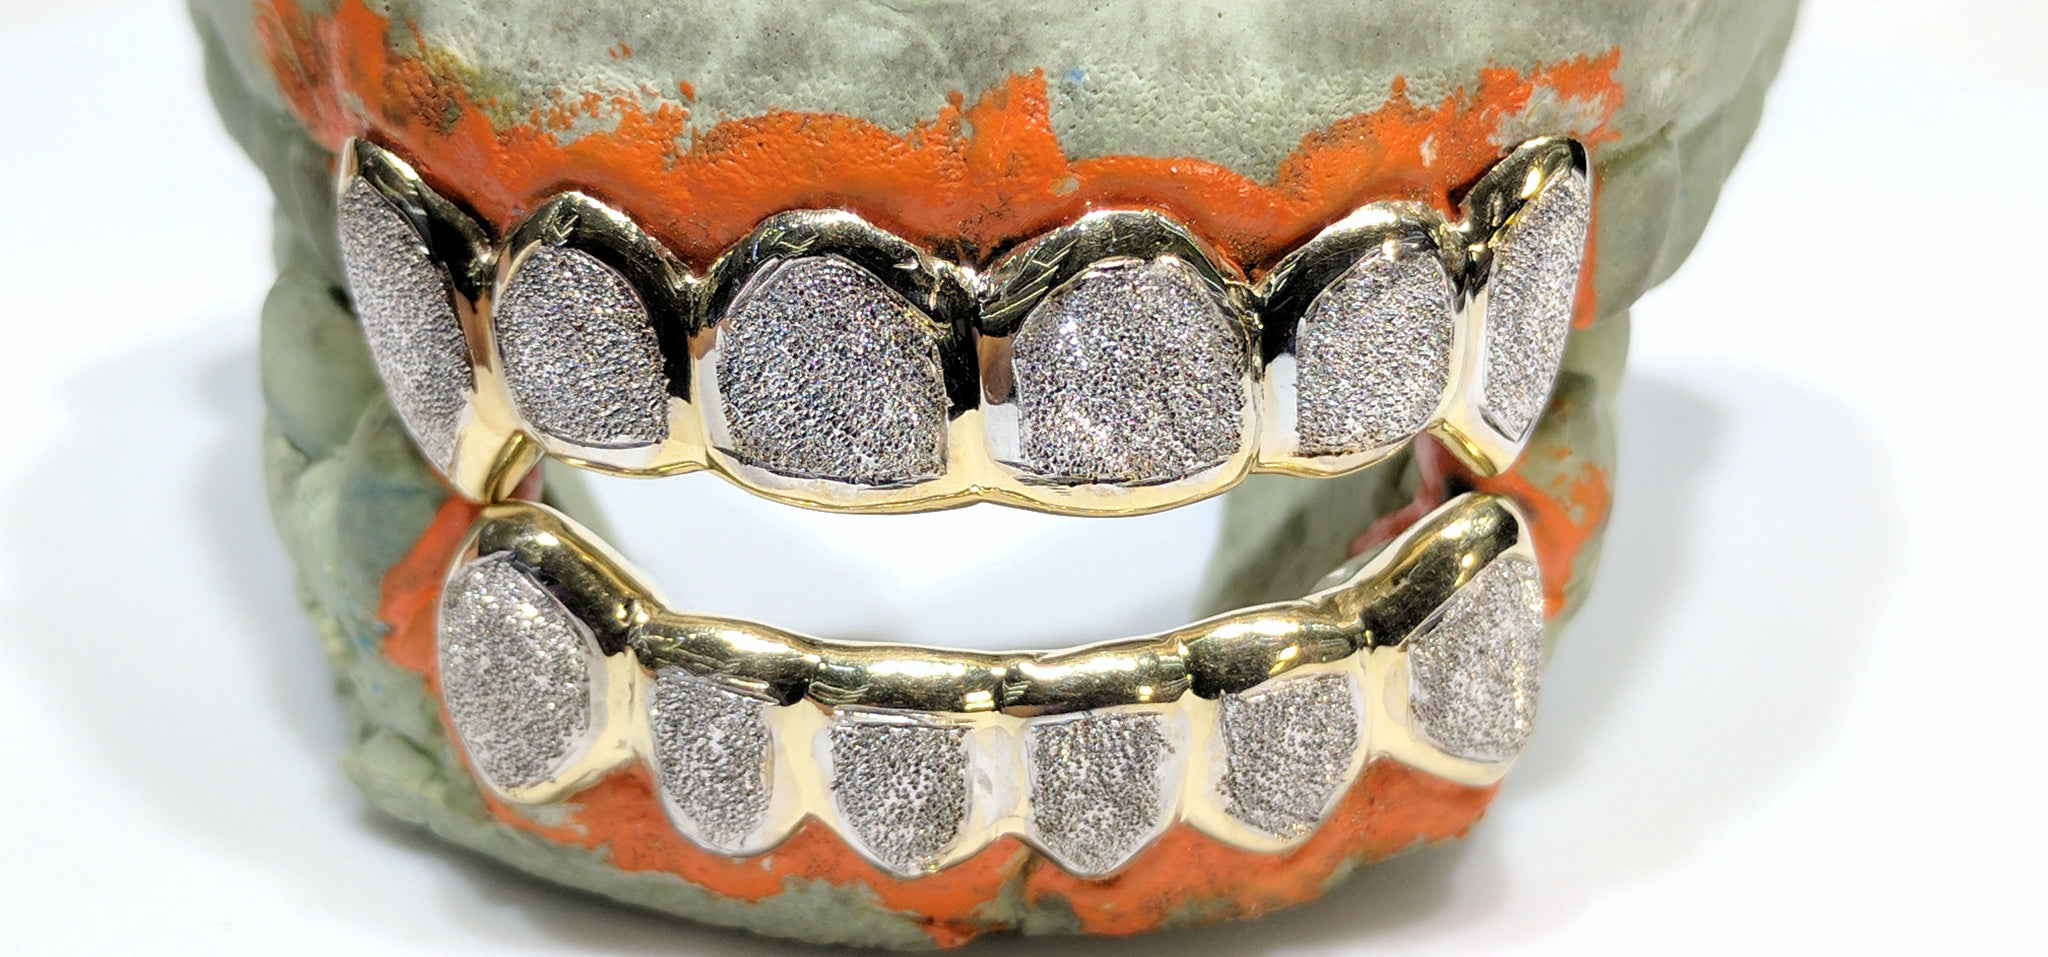 In the center: two bottom and top sets of custom made gold grills in 10 karat yellow gold with two tone rhodium plating high polish and diamond dust laser cut finish made by Popular Jewelry